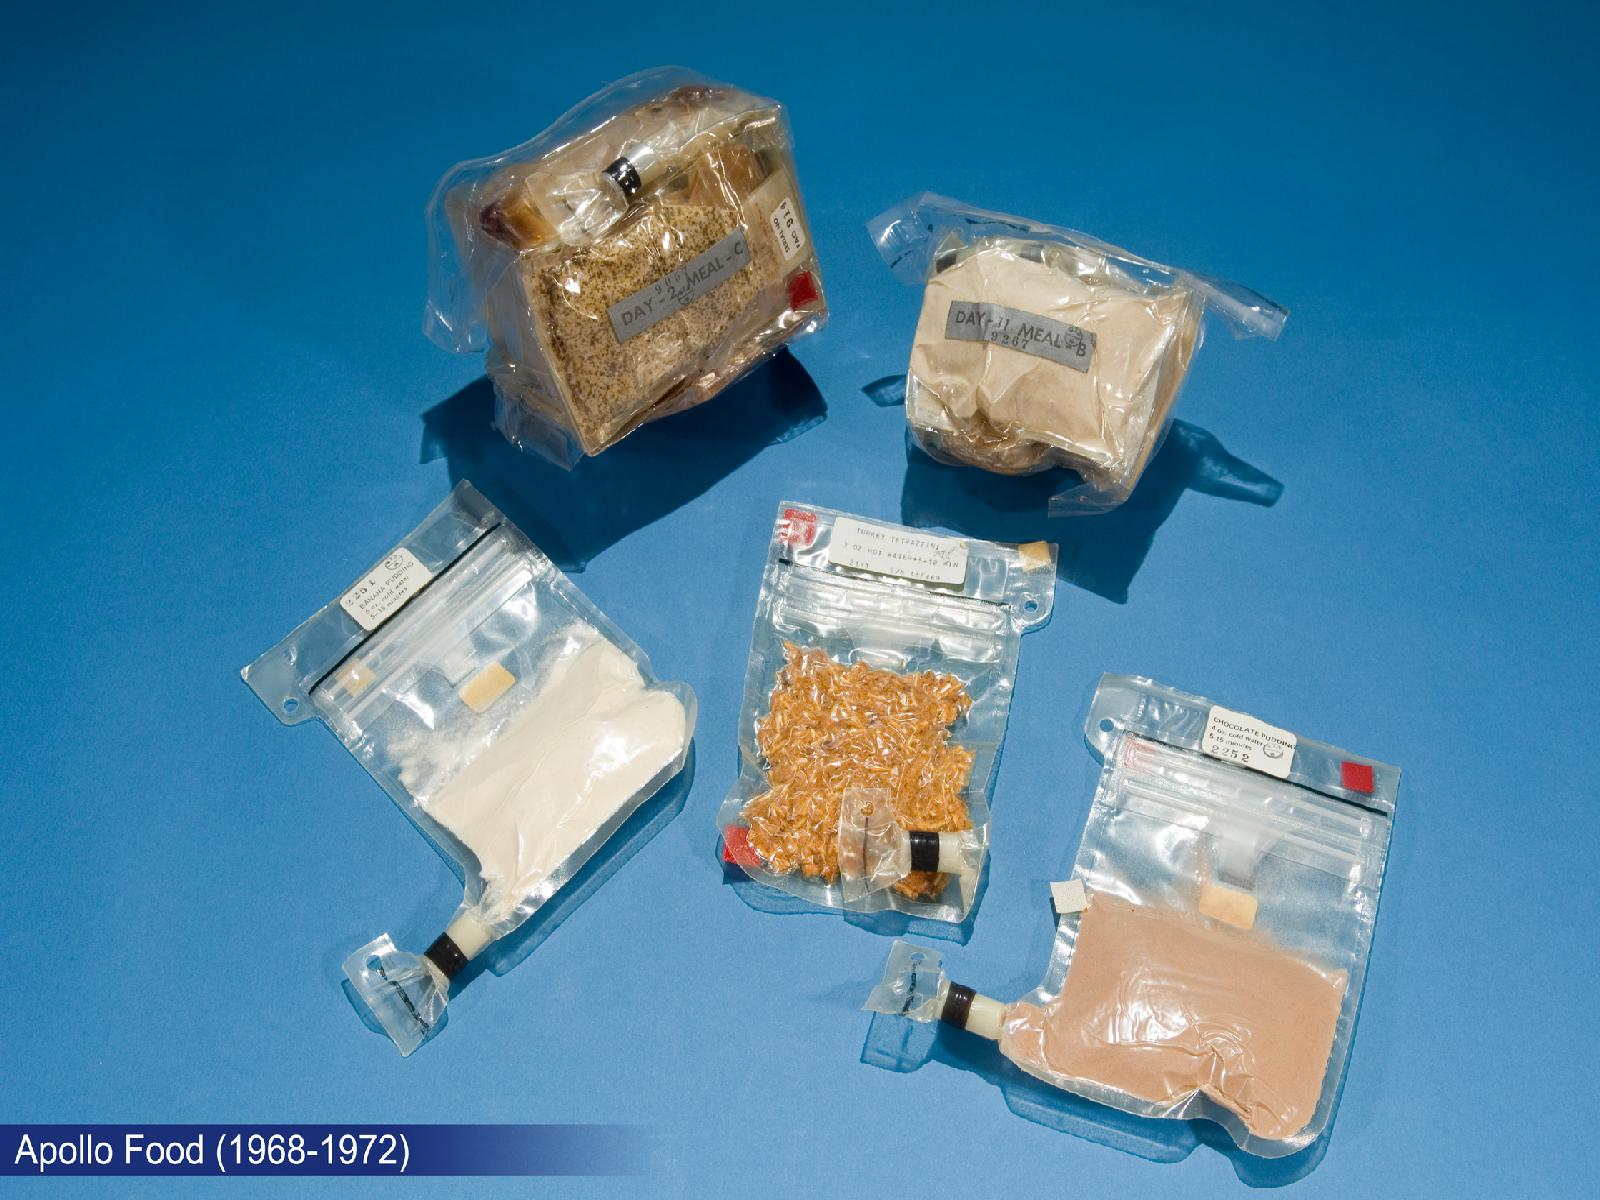 Apollo Program Food (1968 - 1972)